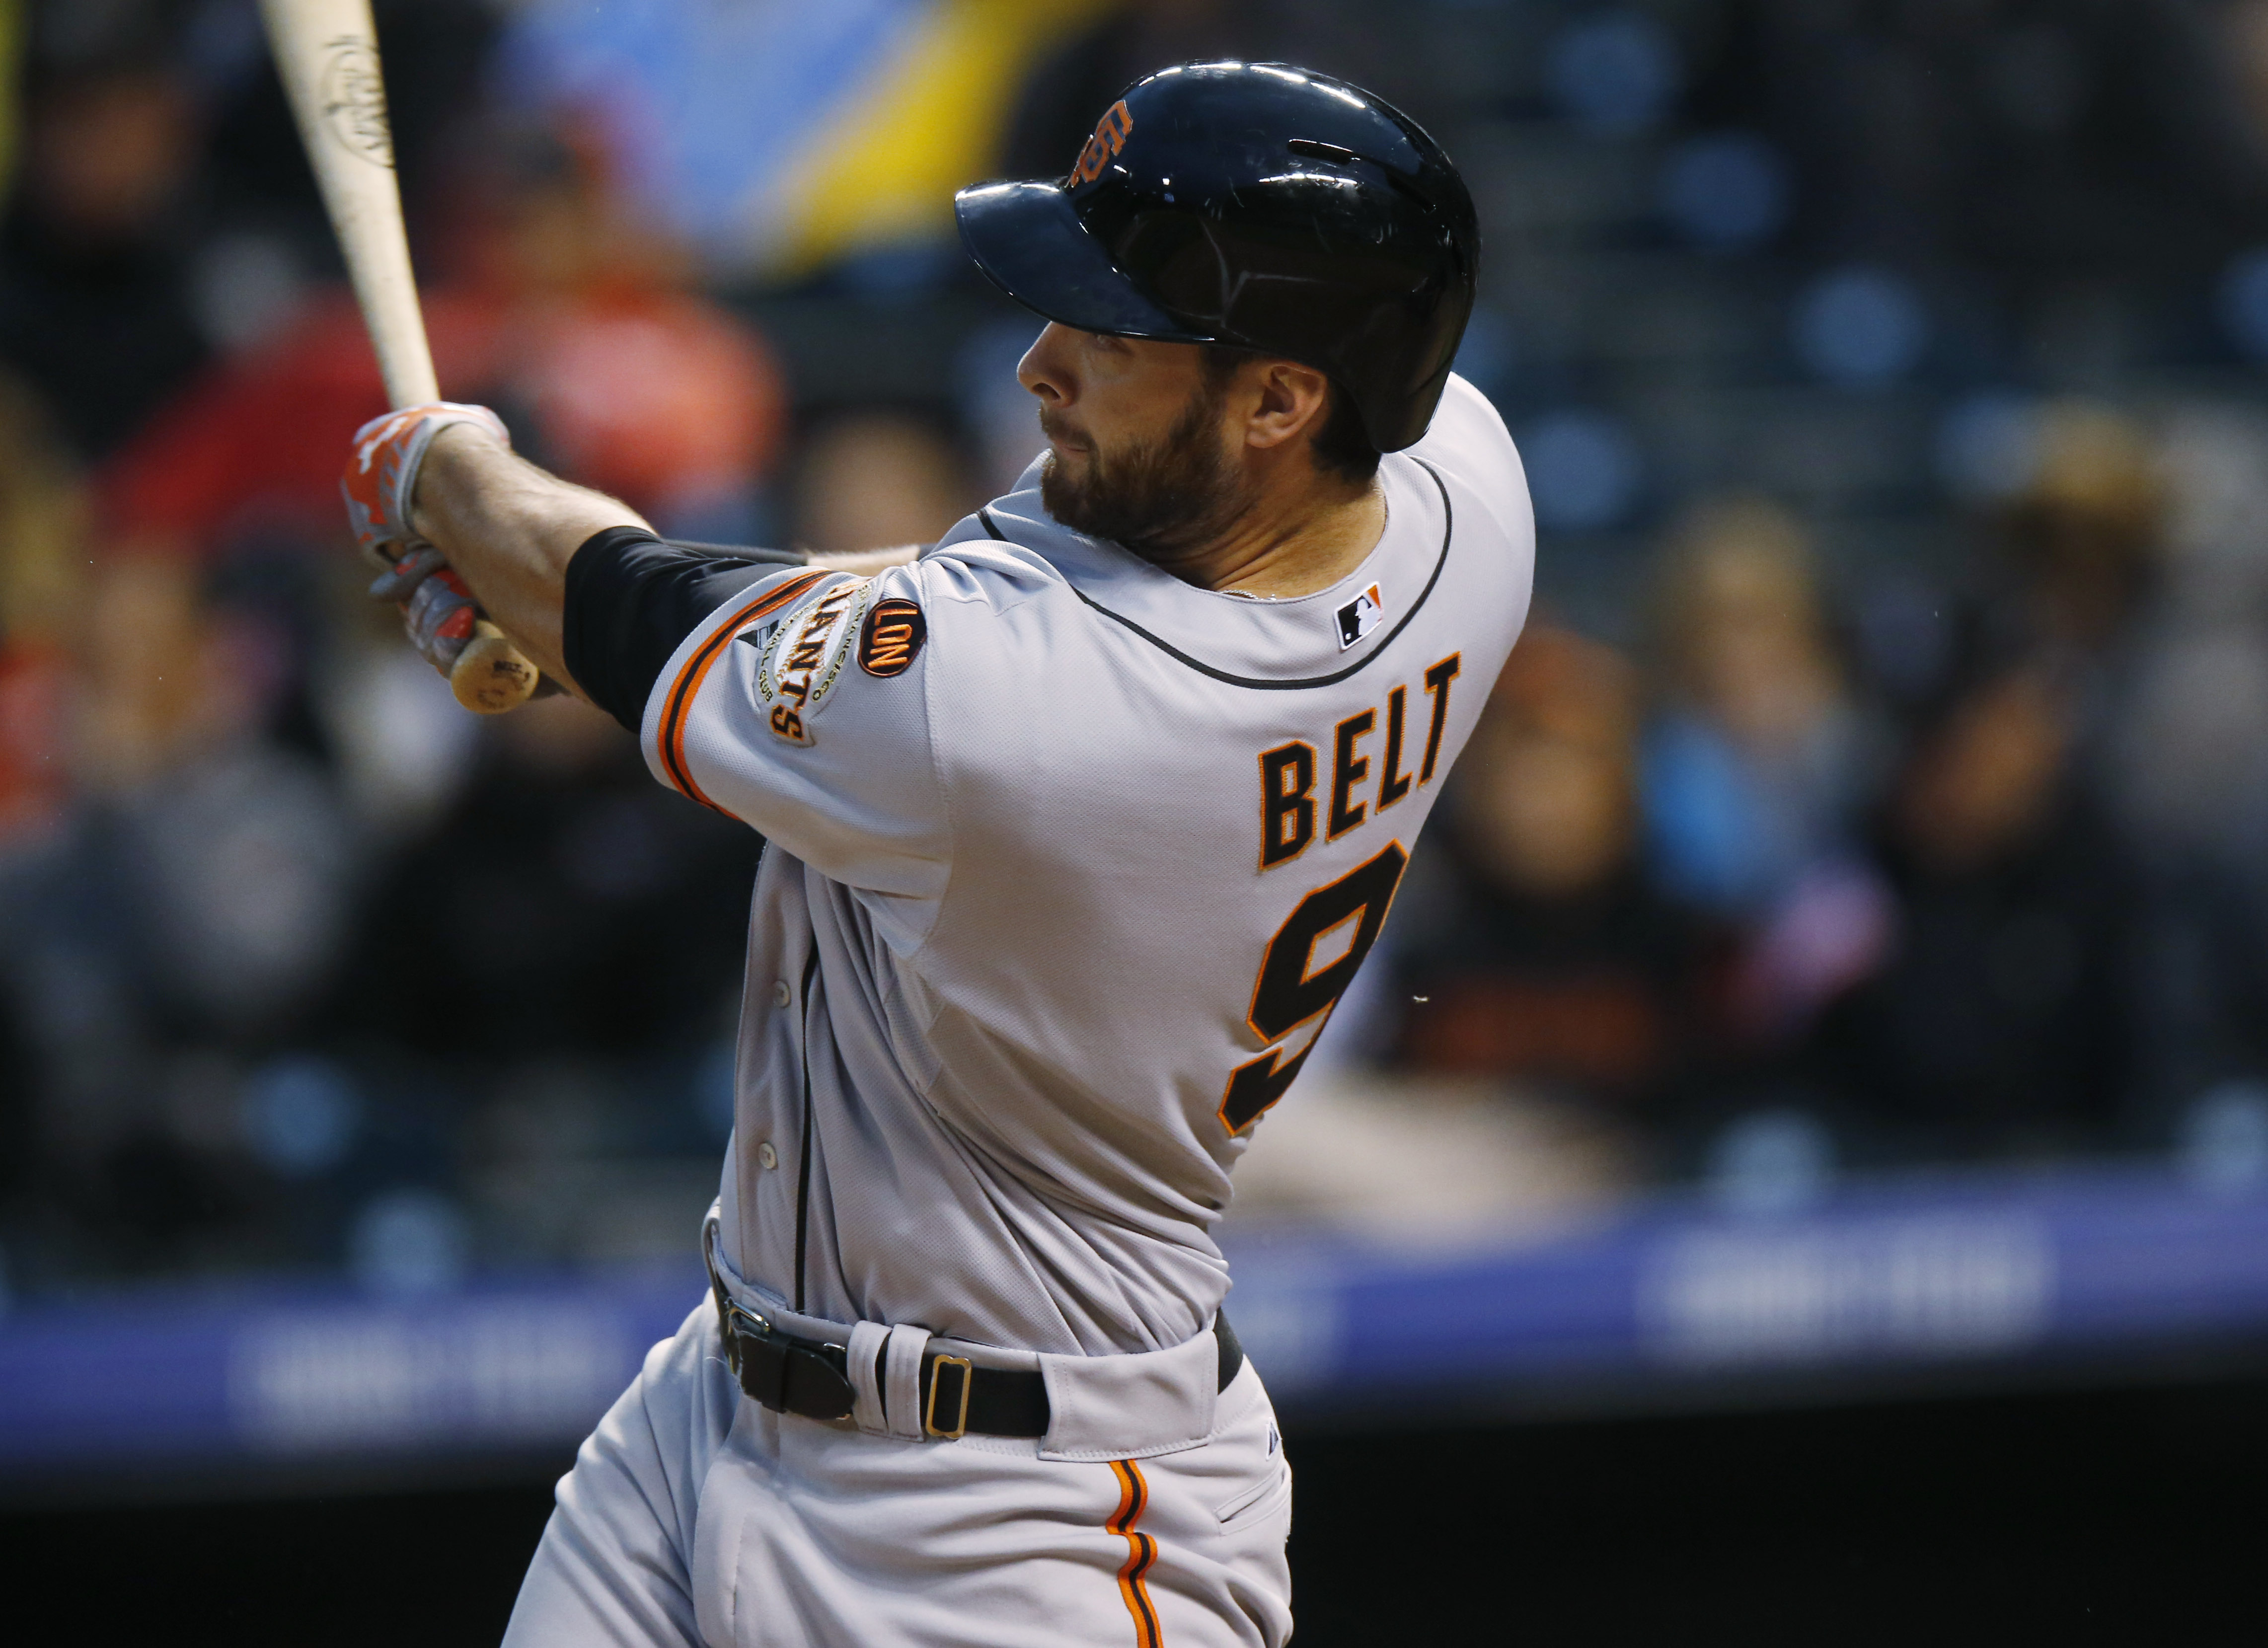 San Francisco Giants' Brandon Belt follows the flight of his two-run home run off Colorado Rockies starting pitcher Kyle Kendrick in the sixth inning of a baseball game Friday, May 22, 2015, in Denver. (AP Photo/David Zalubowski)